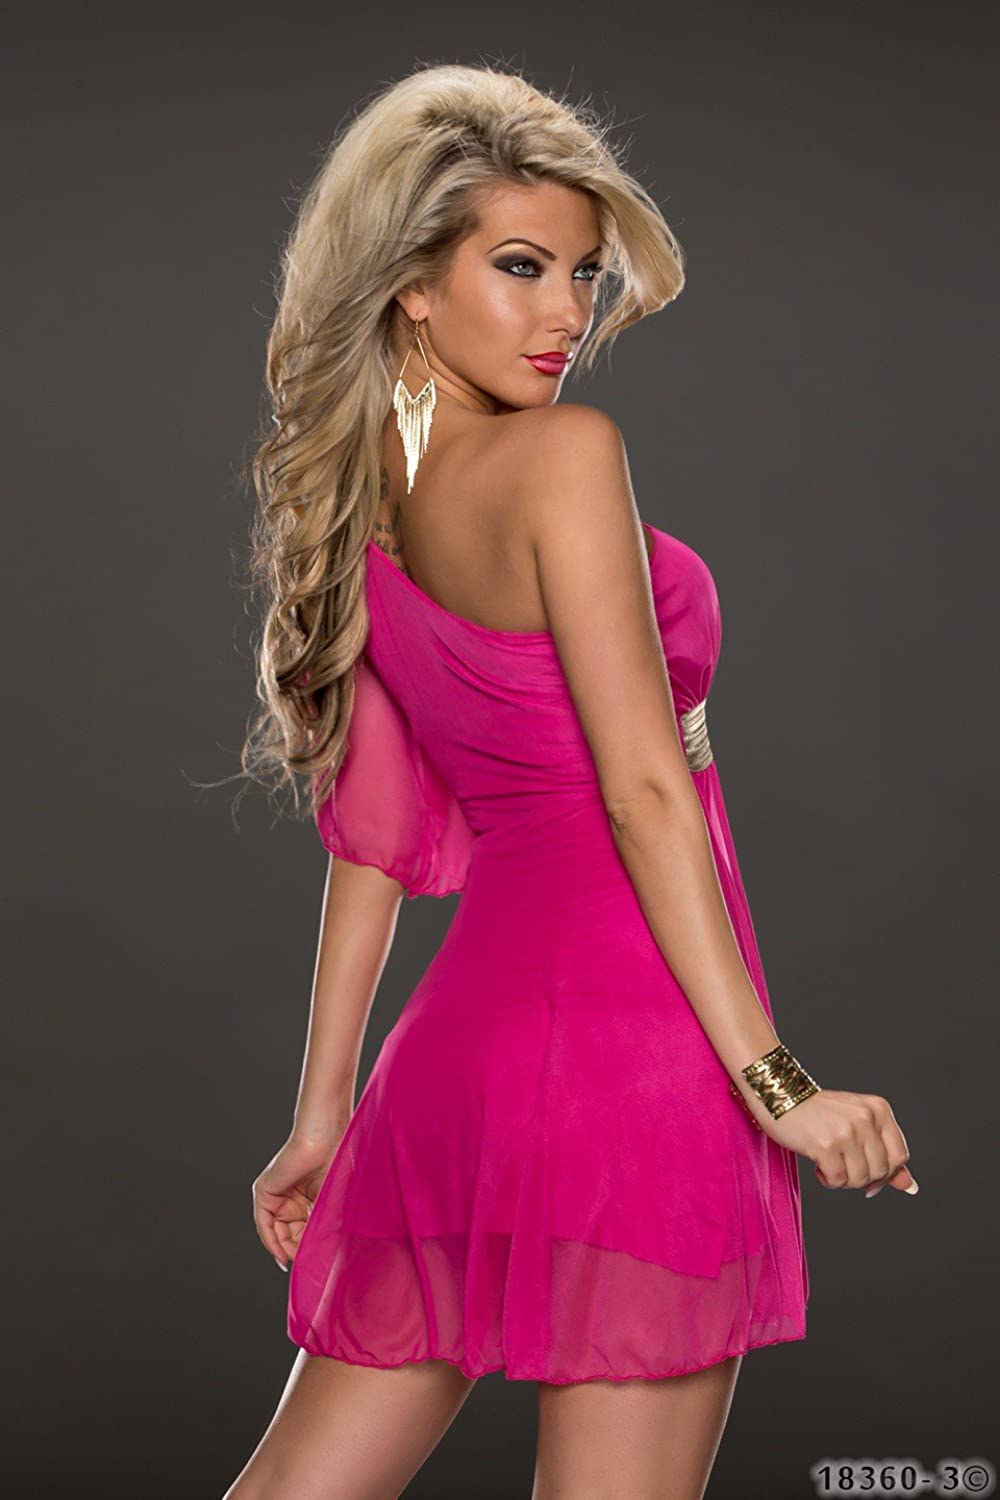 4631 FASHION4Young Women's Tailored One Shoulder dress Party Mini dress Available in 5 Colours Size 34 / 36